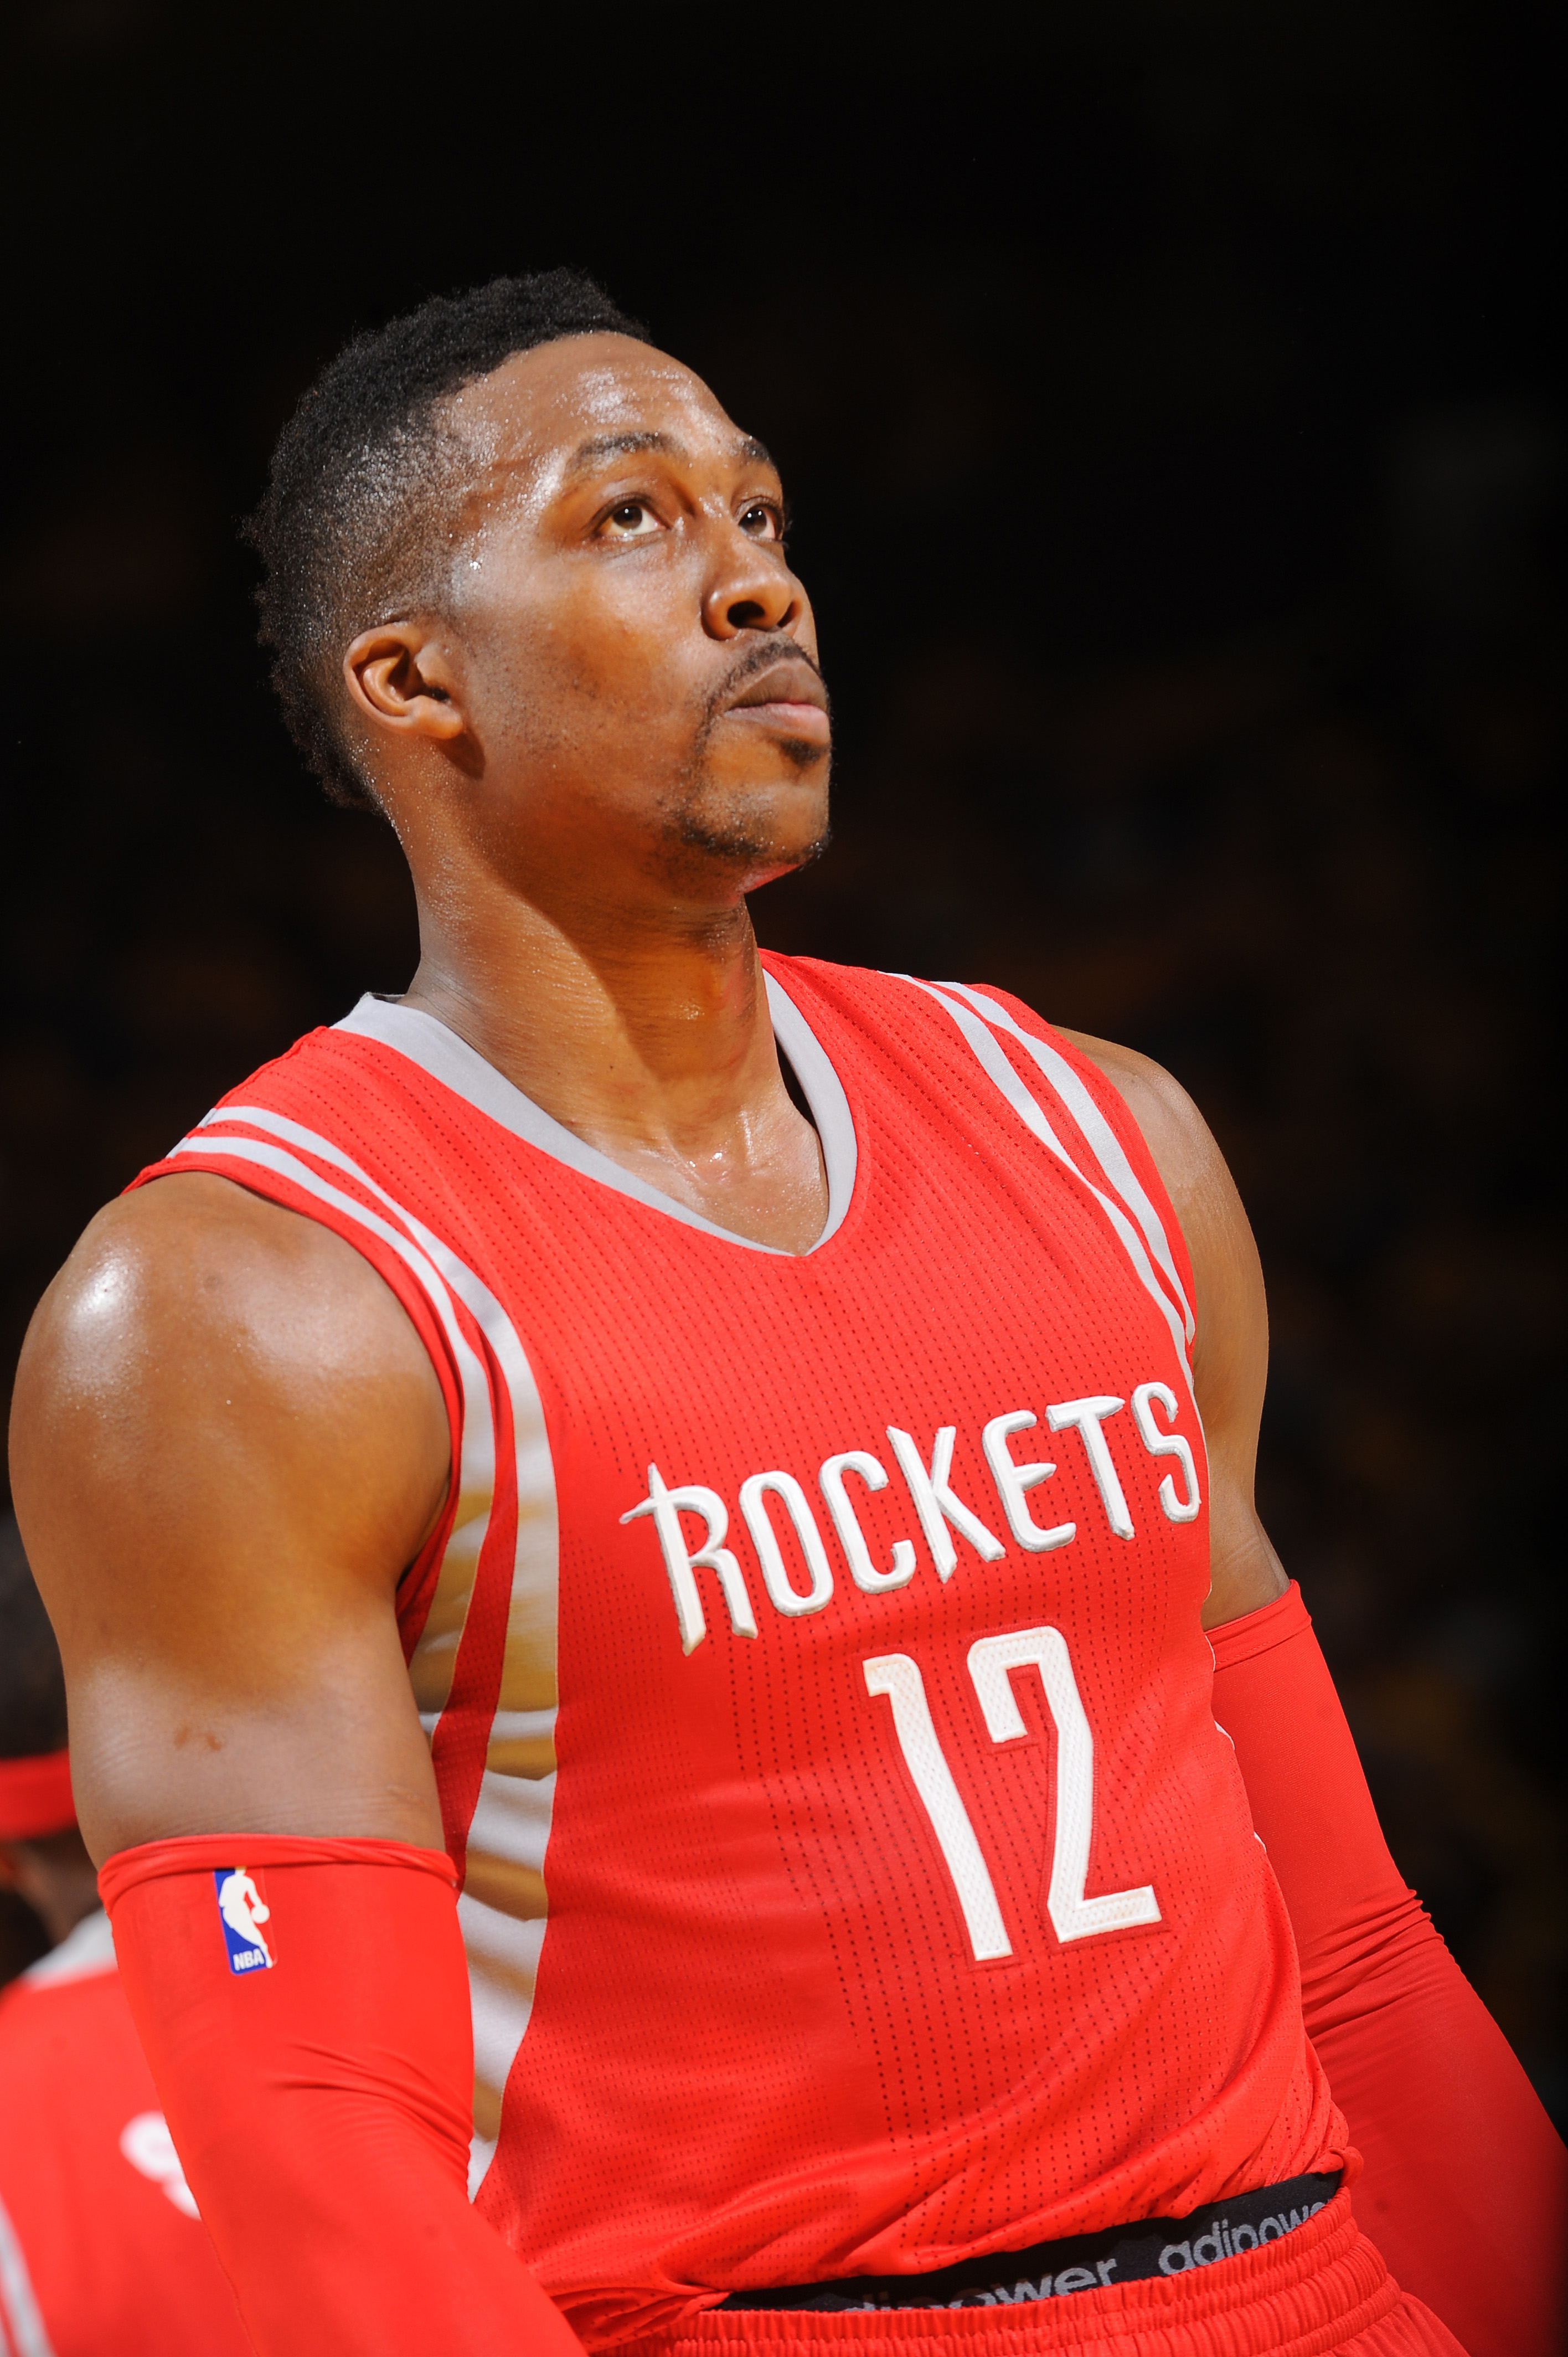 OAKLAND, CA - MAY 19: Dwight Howard #12 of the Houston Rockets during Game One of the Western Conference Finals against the Golden State Warriors during the NBA Playoffs on May 19, 2015 at ORACLE Arena in Oakland, California.  (Photo by Noah Graham/NBAE v